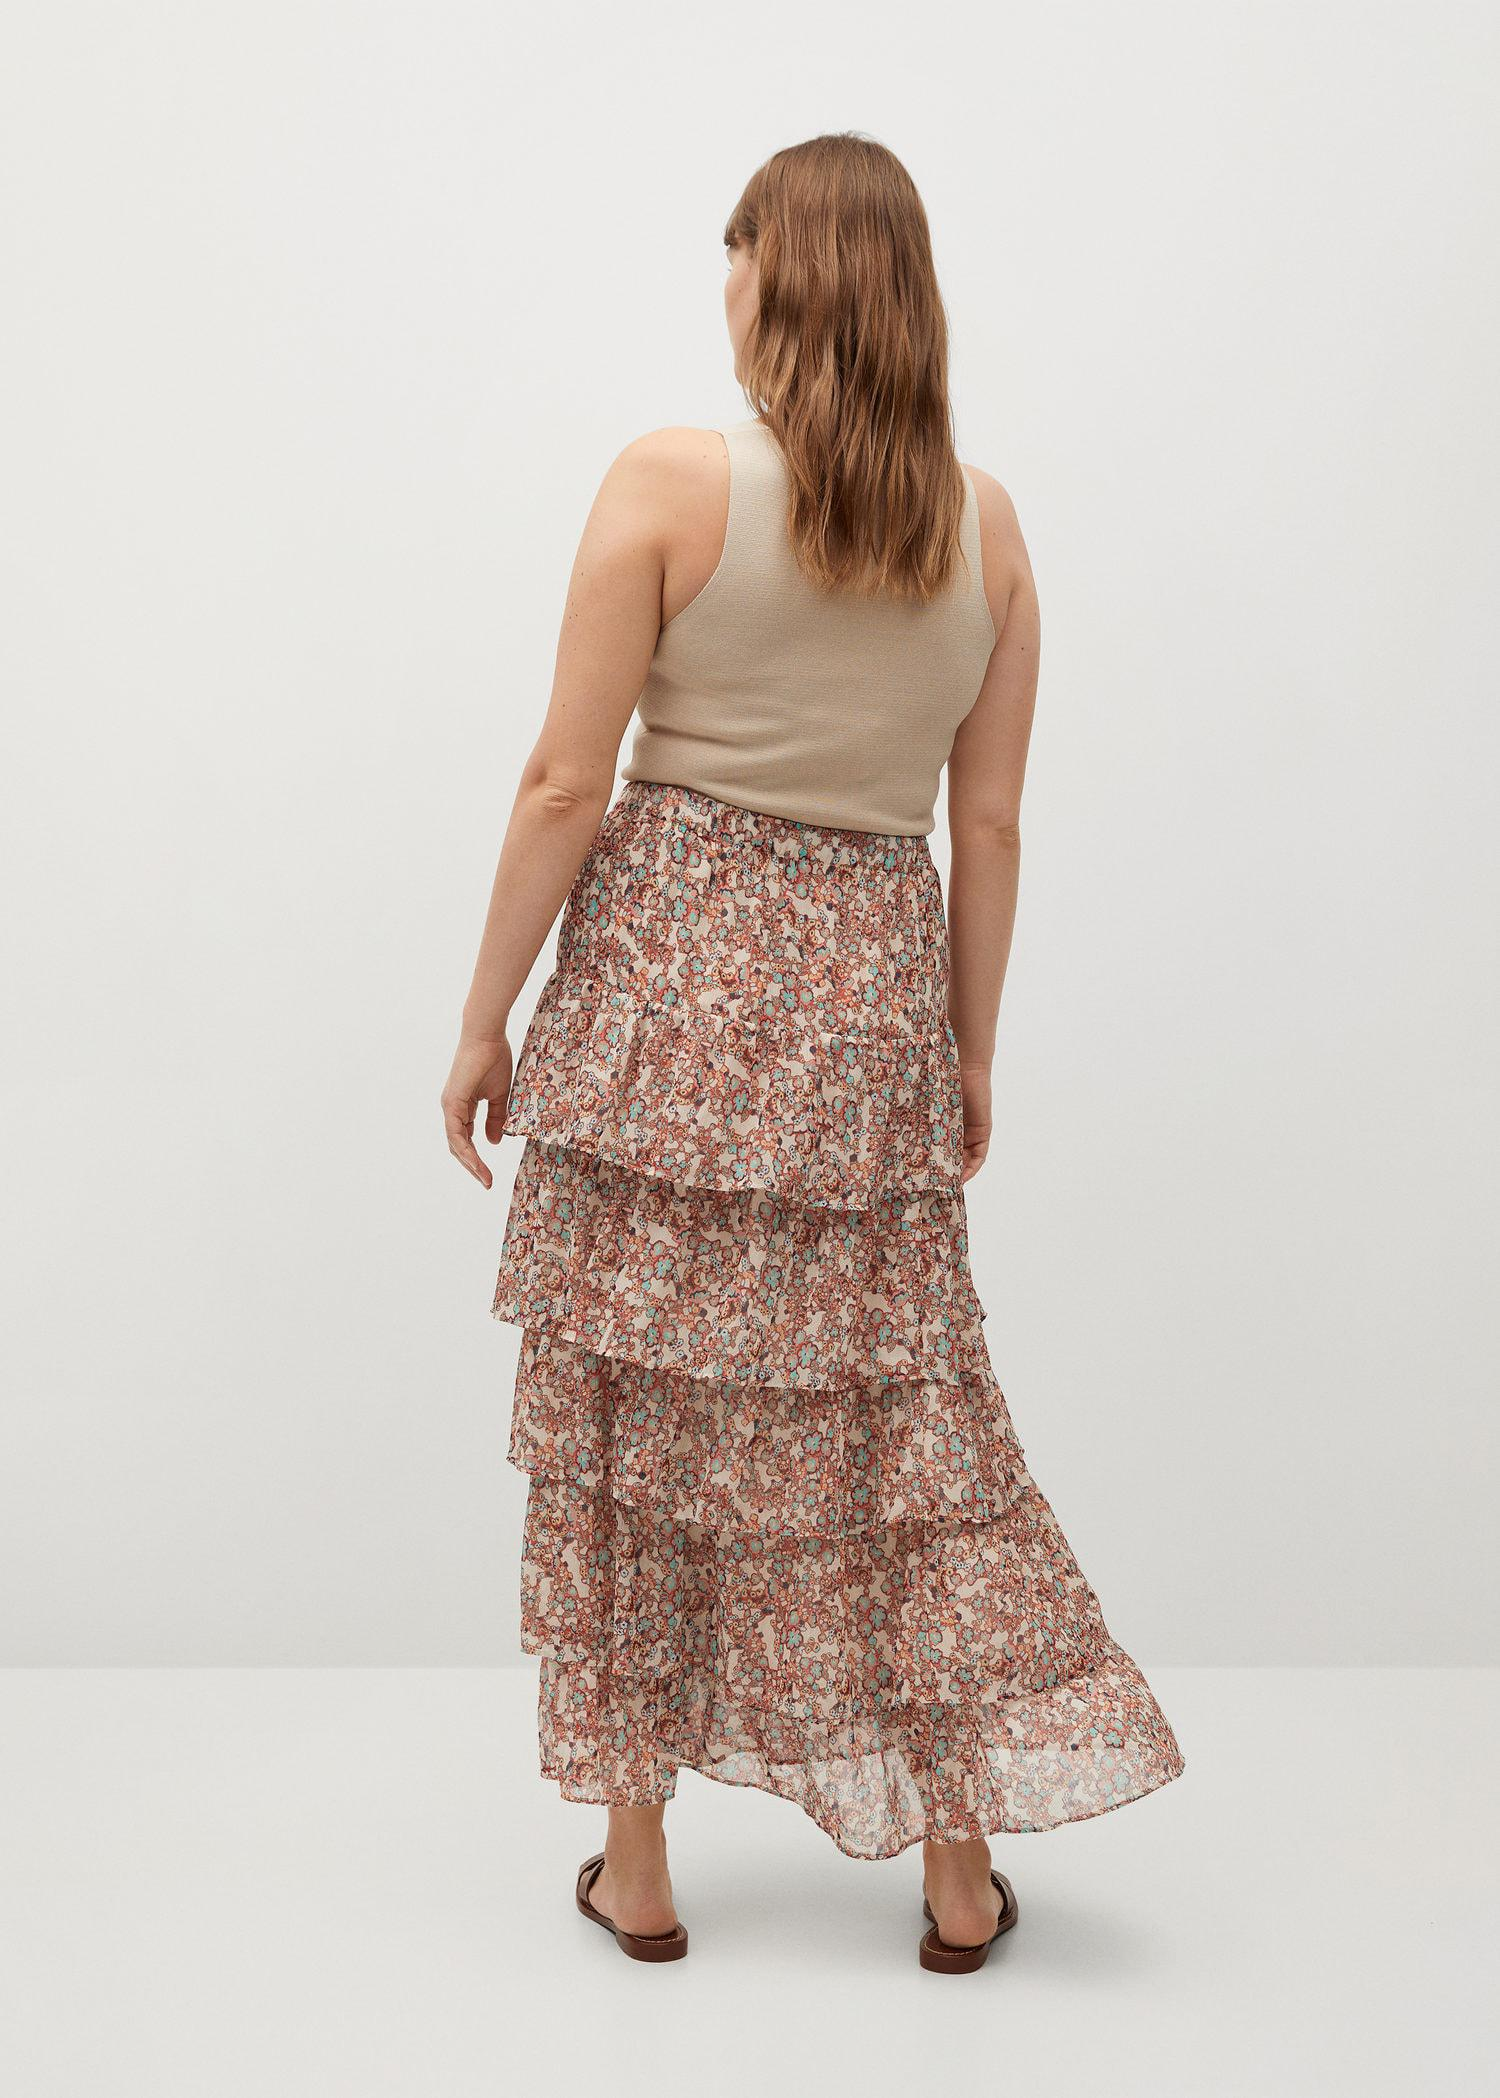 Printed skirt with ruffles 2